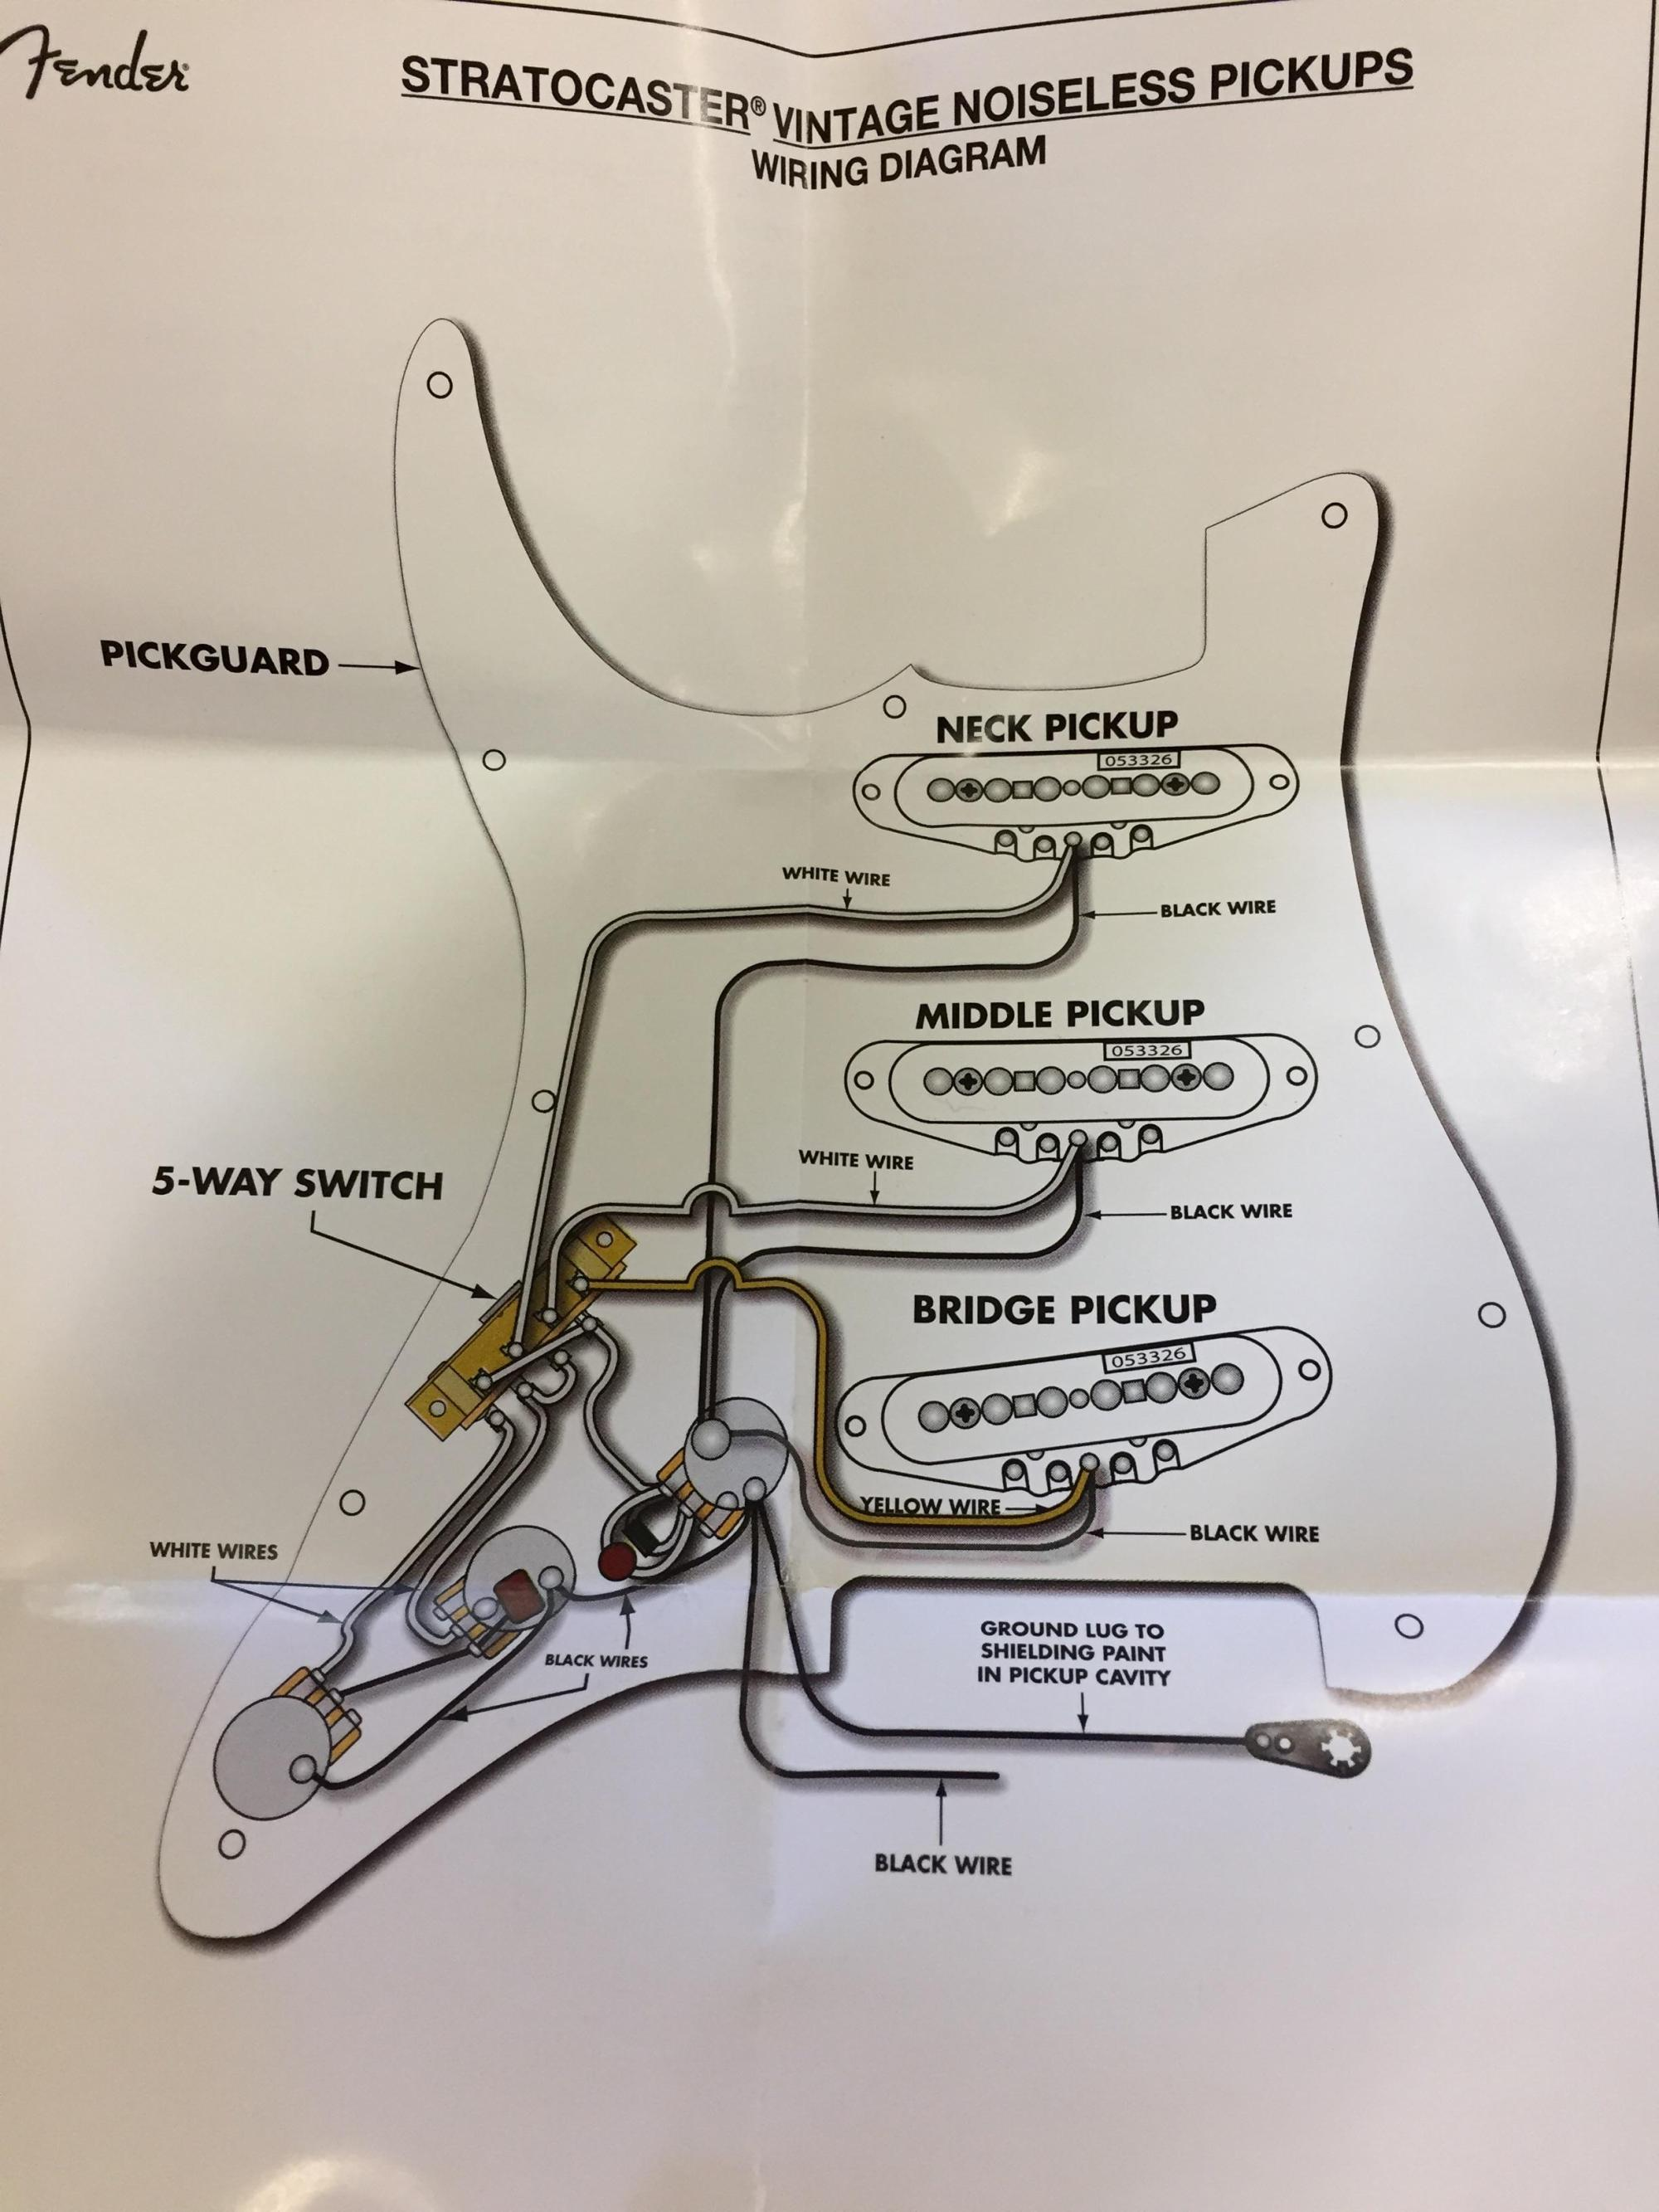 hight resolution of fender pickup wiring diagram wiring diagram document guide fender lead ii wiring diagram fender vintage noiseless